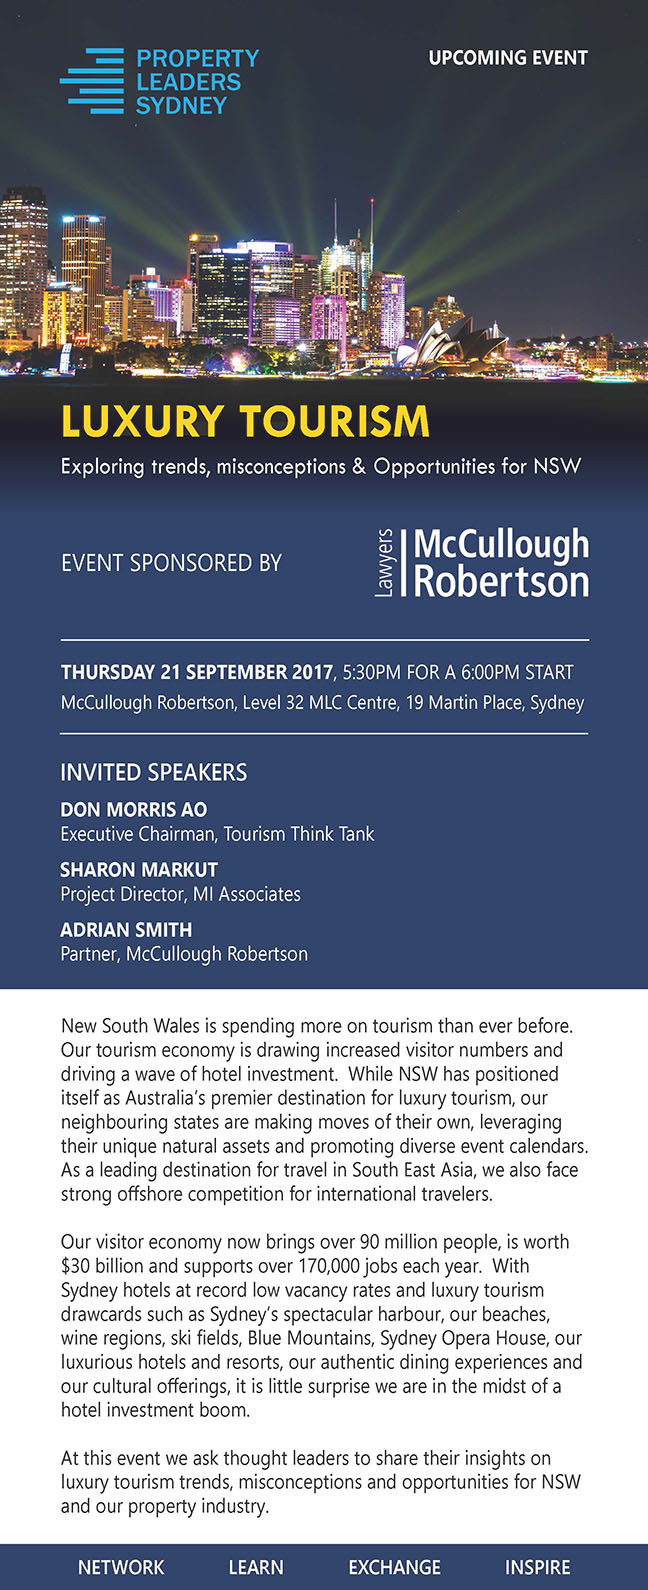 Property Leaders Sydney and event sponsor McCullough Robertson announce our next event Luxury Tourism: Exploring trends, misconceptions and opportunities for NSW